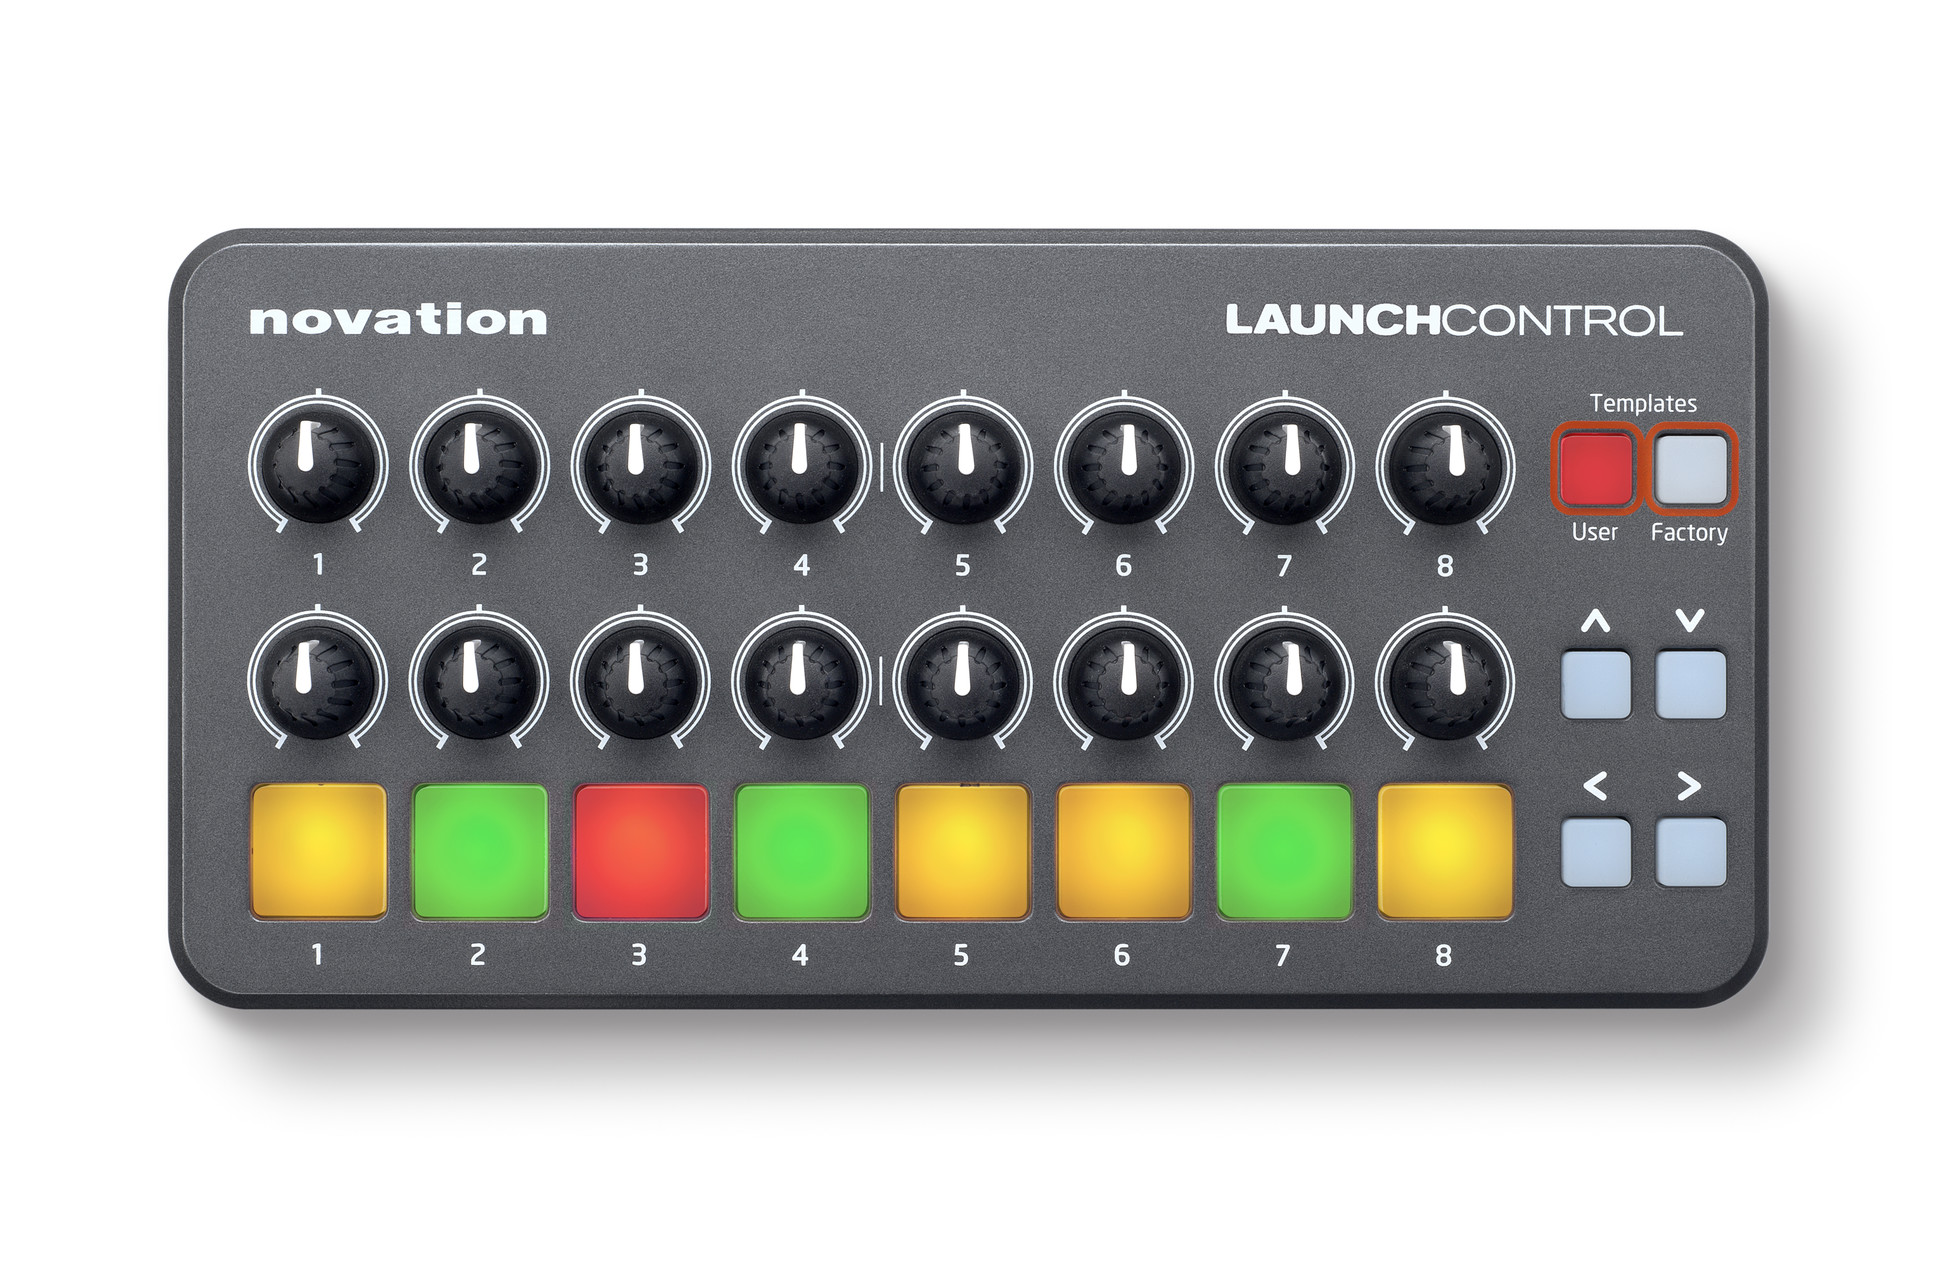 novation_Launch_Control.jpg